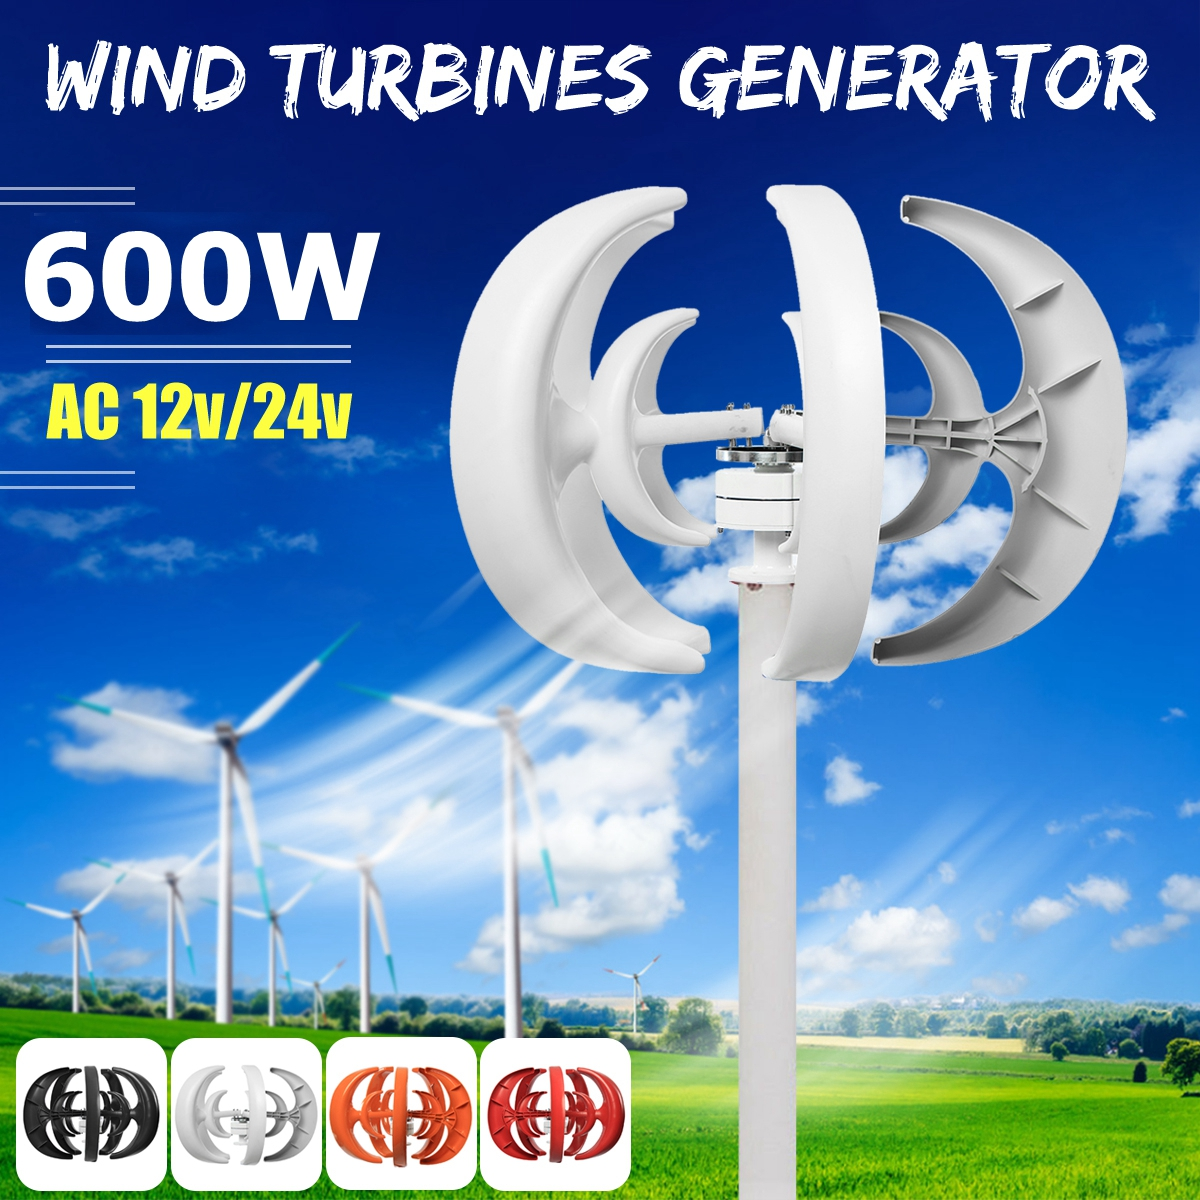 Max 600W AC 12V 24V Wind Turbine Generator Lantern 5 Blades Motor Kit Vertical Axis-in Alternative Energy Generators from Home Improvement